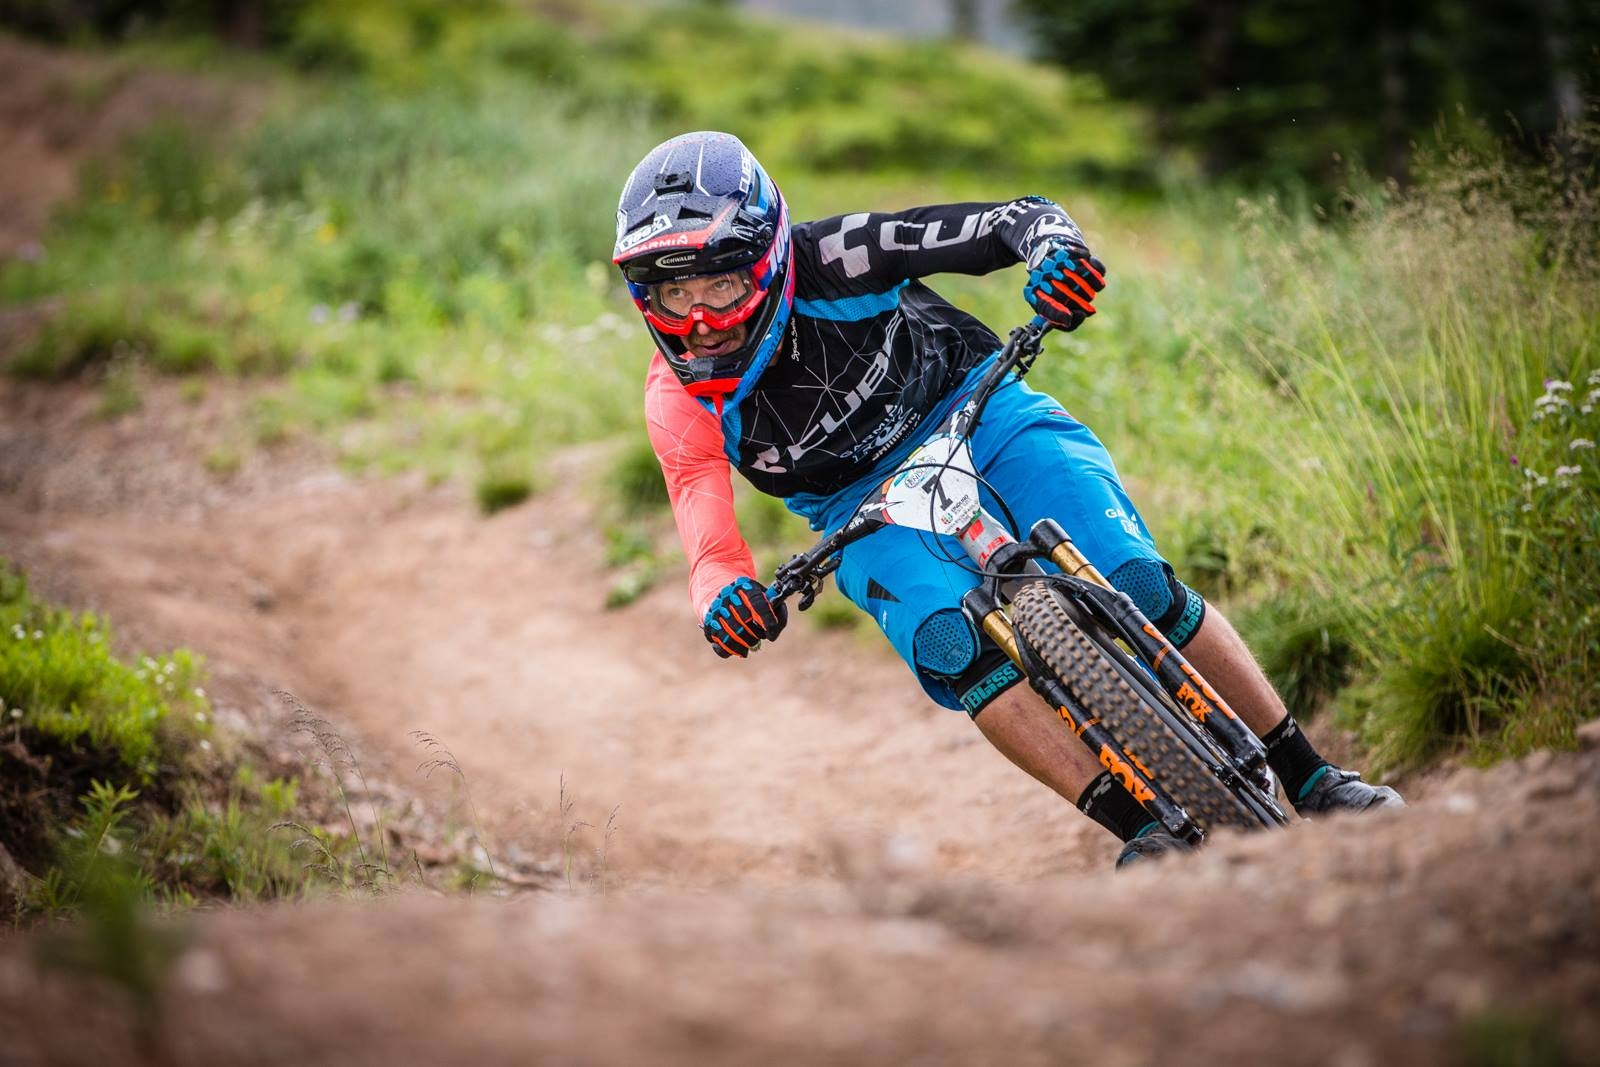 Nicolas Lau prend la 2ème place des Enduro World Series d'Aspen, USA